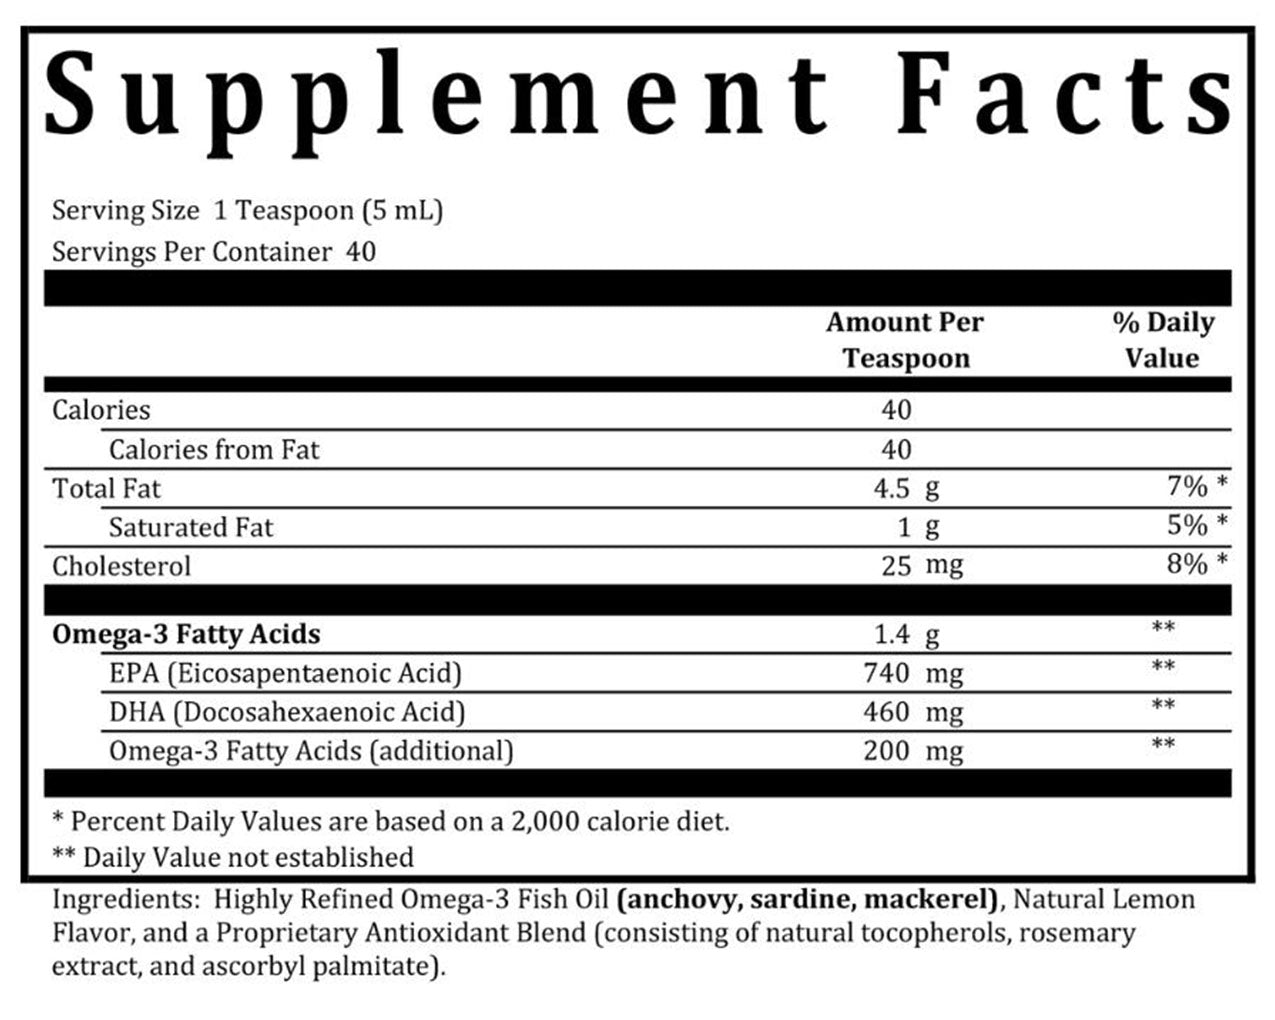 Omega-3 Fish Oil Liquid supplement Facts Box